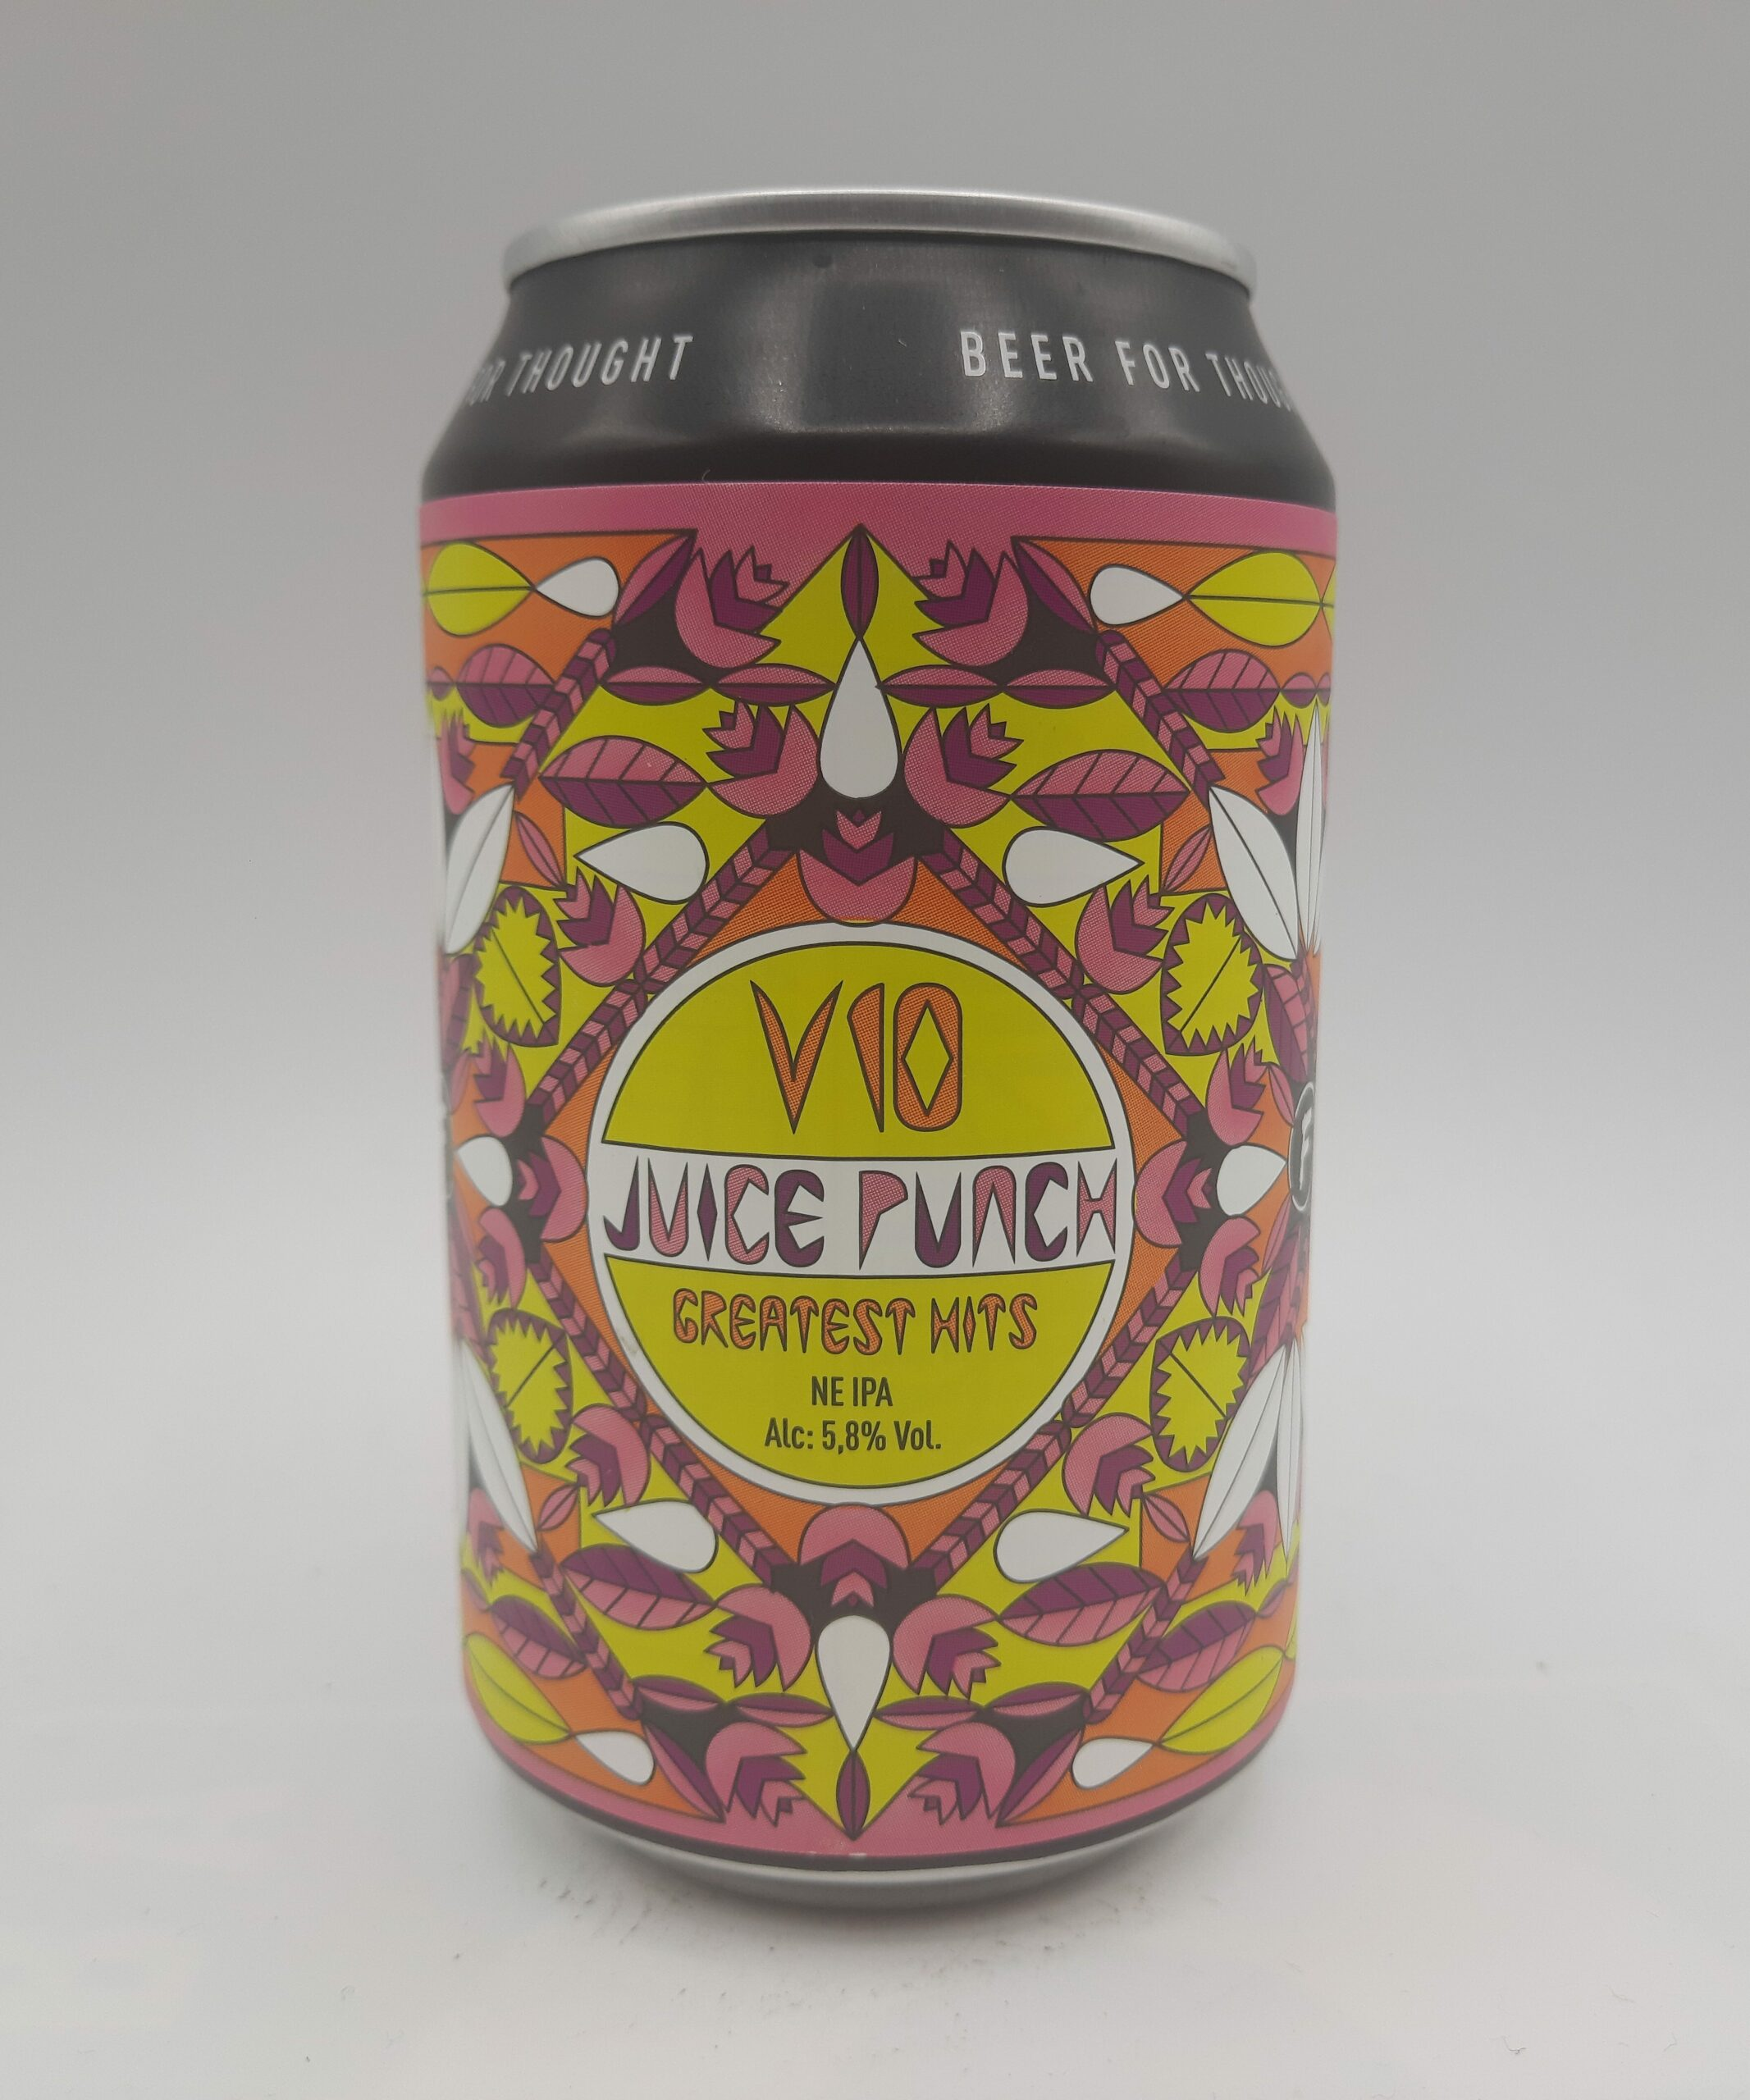 Image Juice Punch v10 bbf 21/02/2021